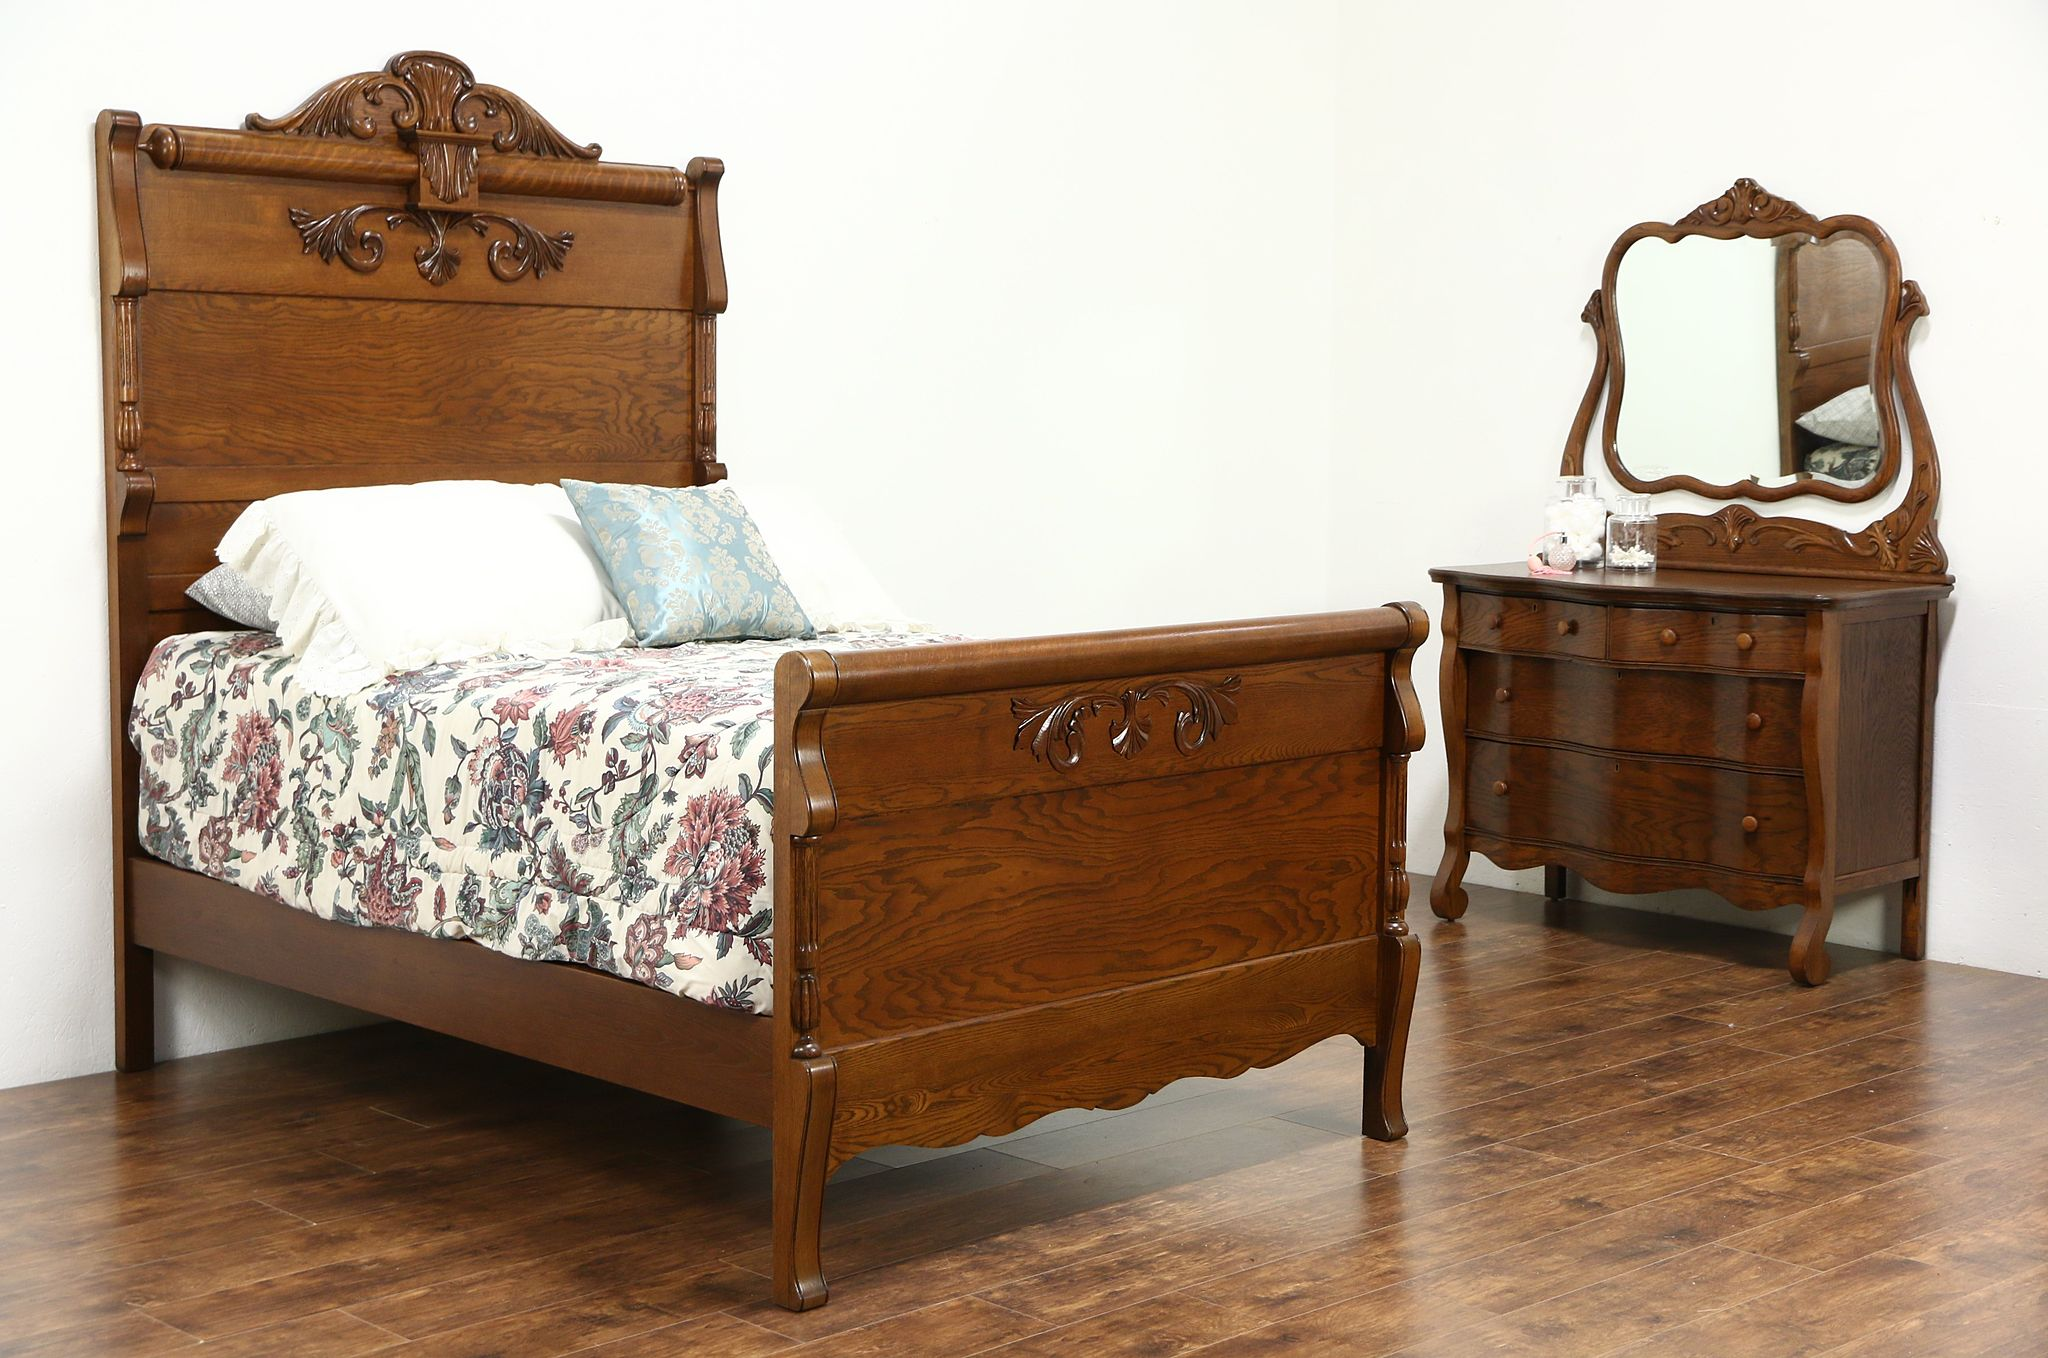 antique bedroom furniture 1900 SOLD   Victorian Carved Oak Antique 1900 Bedroom Set, Full Size  antique bedroom furniture 1900